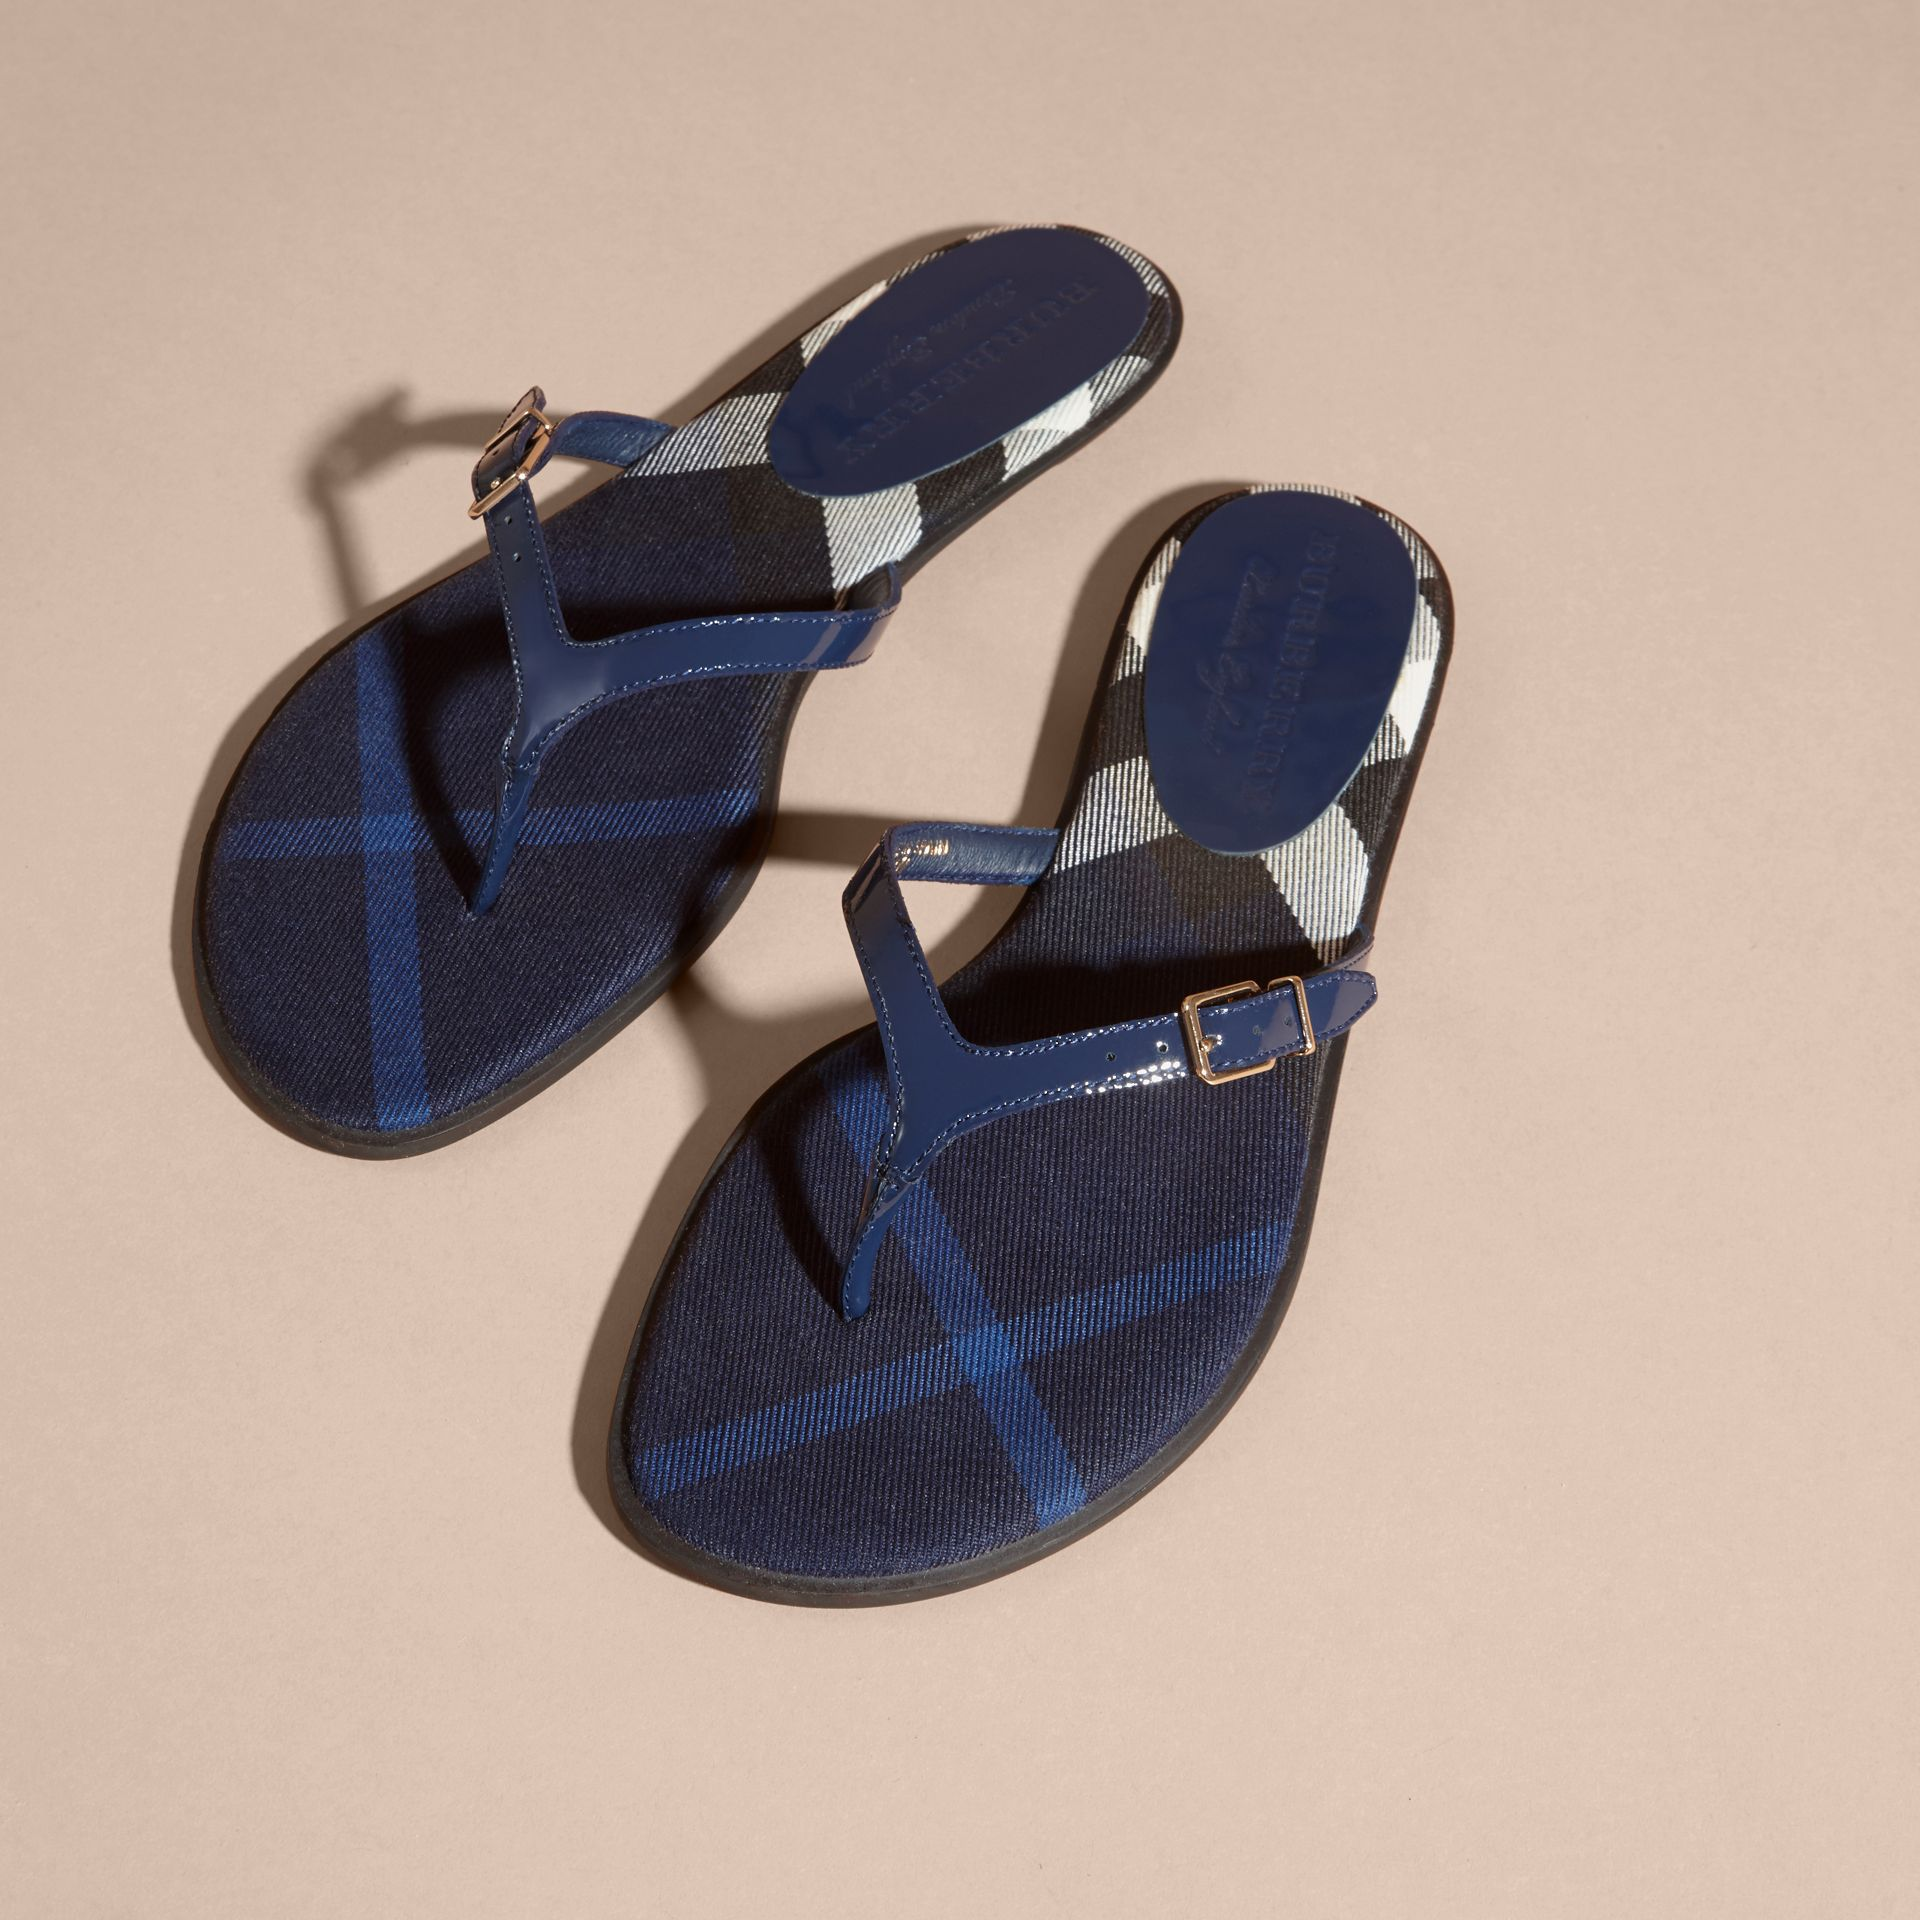 House Check and Patent Leather Sandals in Indigo Blue - Women | Burberry - gallery image 3